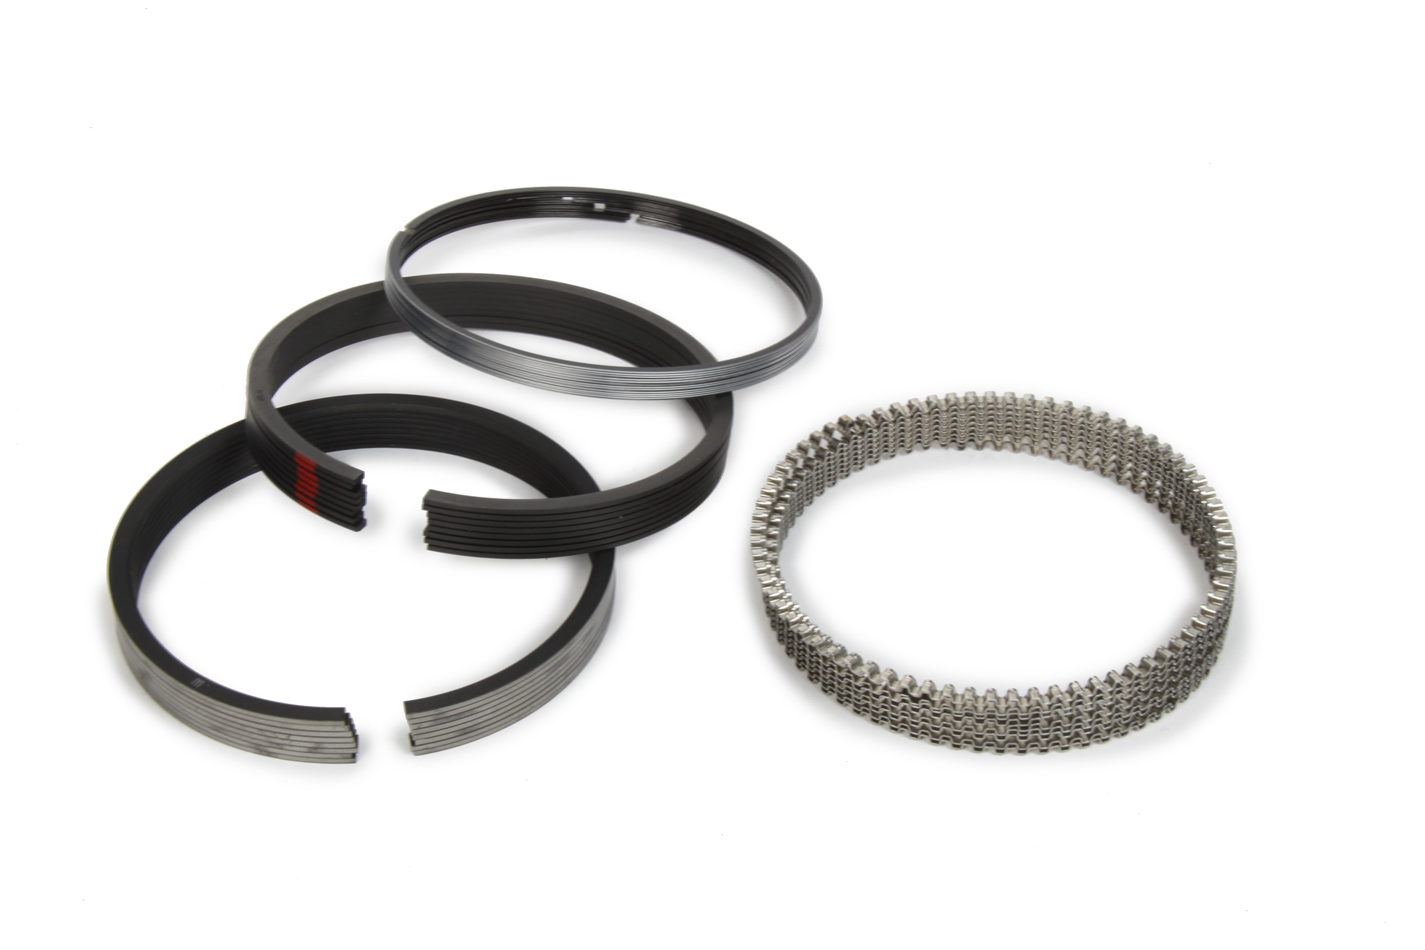 Michigan 77 315-0049.030 Piston Rings, 4.030 in Bore, 1/16 x 1/16 x 3.0 mm Thick, Low Tension, Plasma Moly, 8 Cylinder, Kit